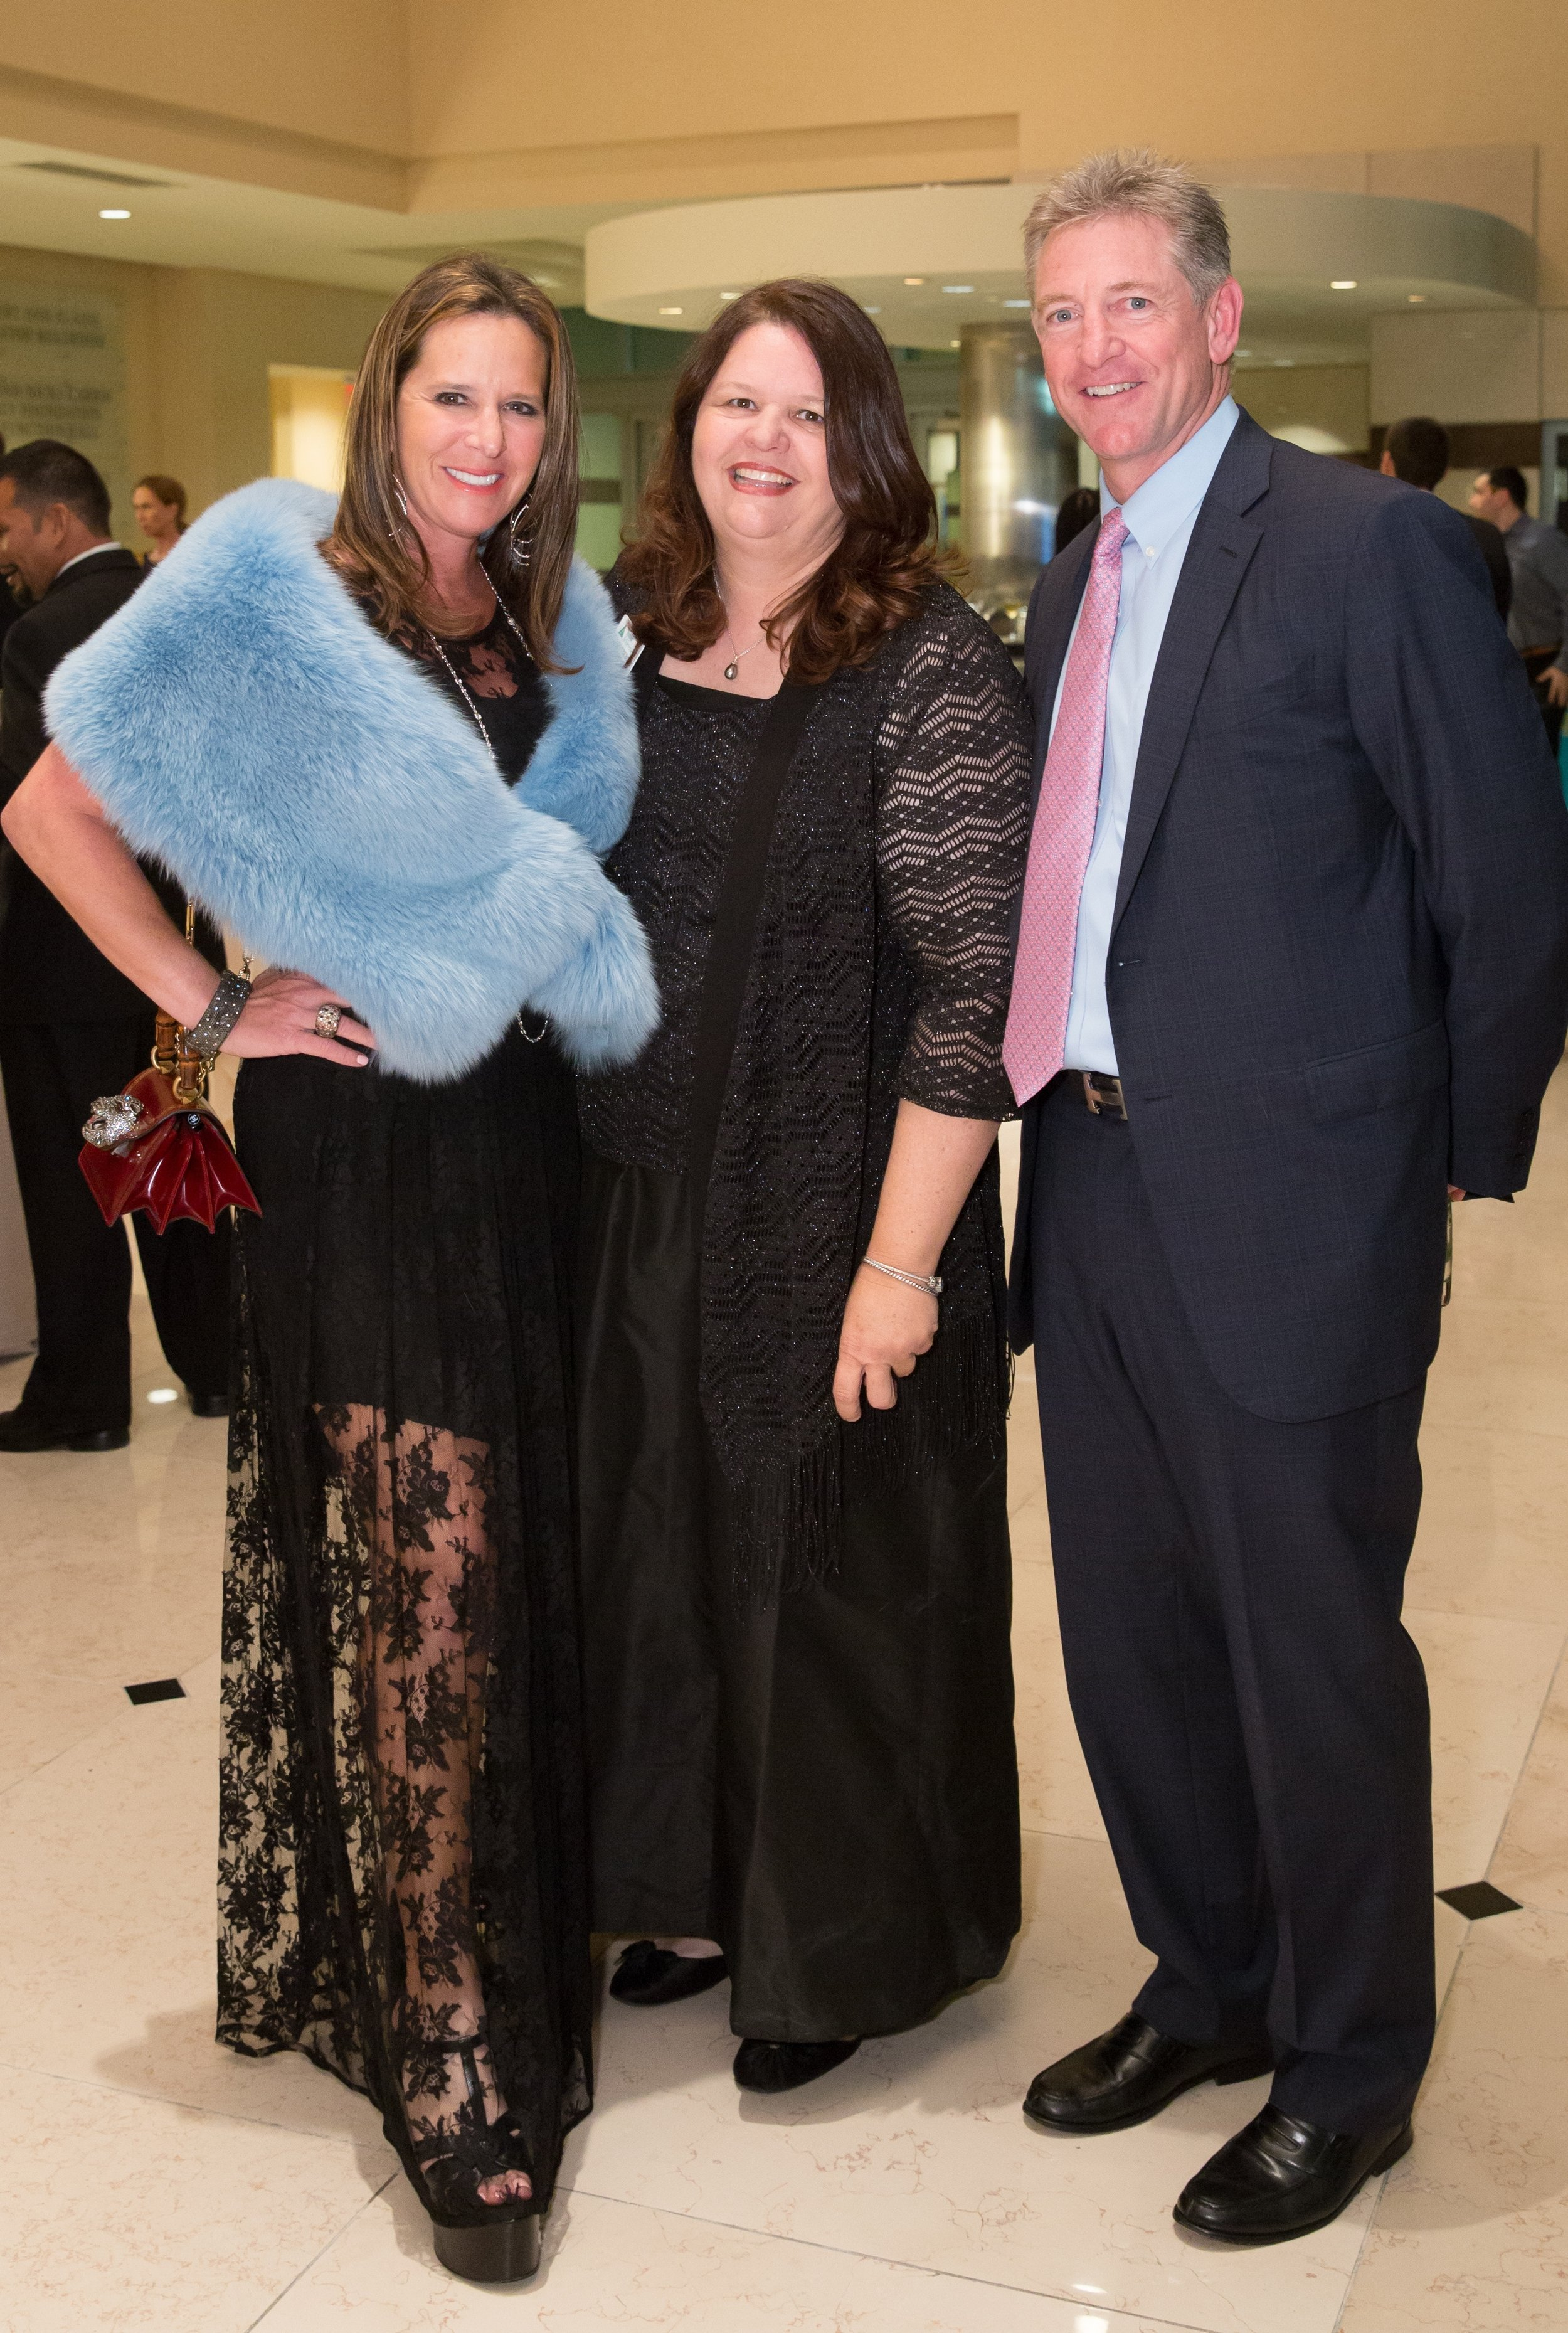 Hilary Musser, Claudia Kirk Barto, Dale Kahle.jpg